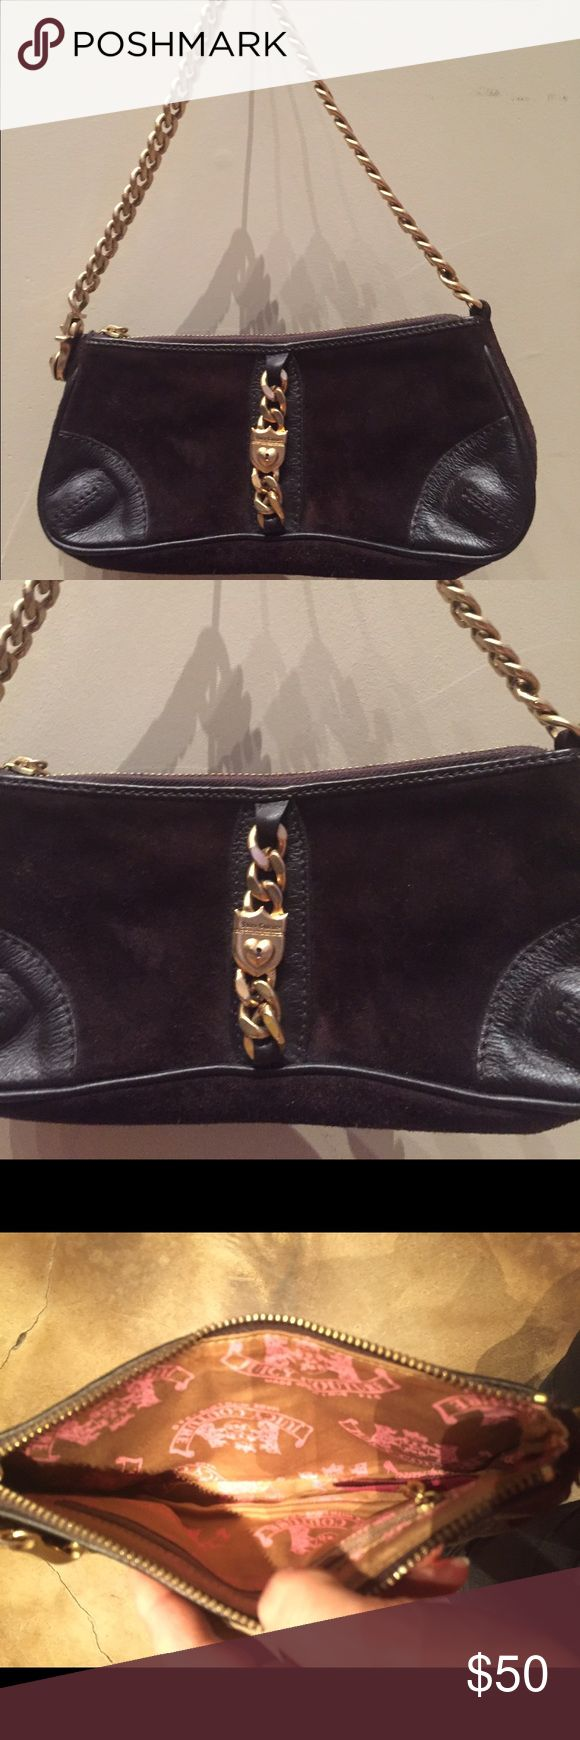 Small Juicy Purse Small Juicy Purse with thick gold chain Juicy Couture Bags